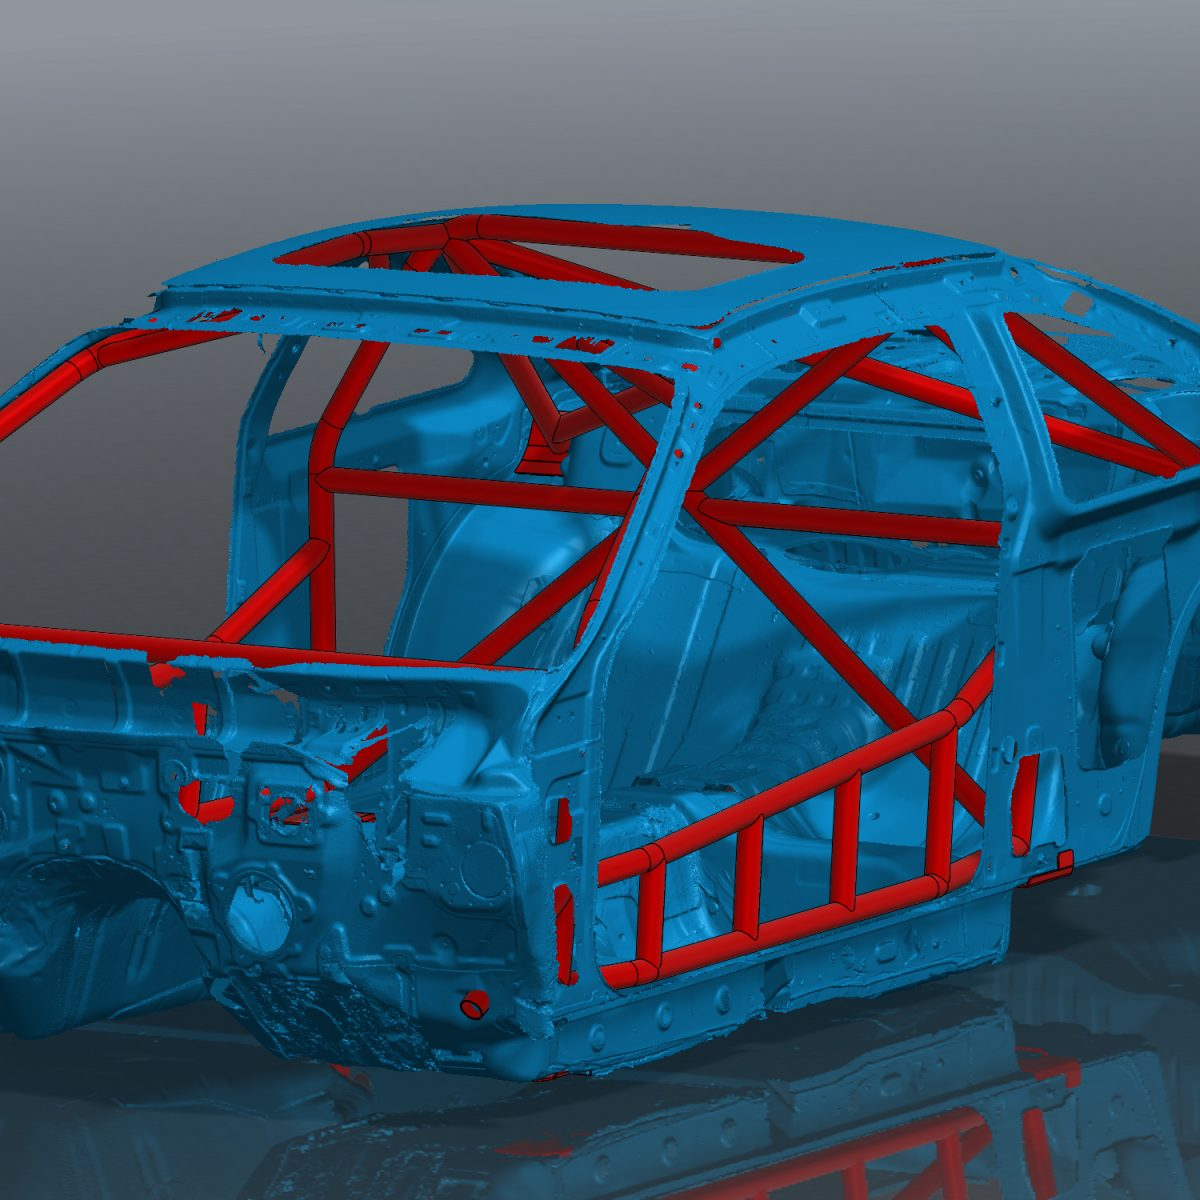 S14 Roll Cage